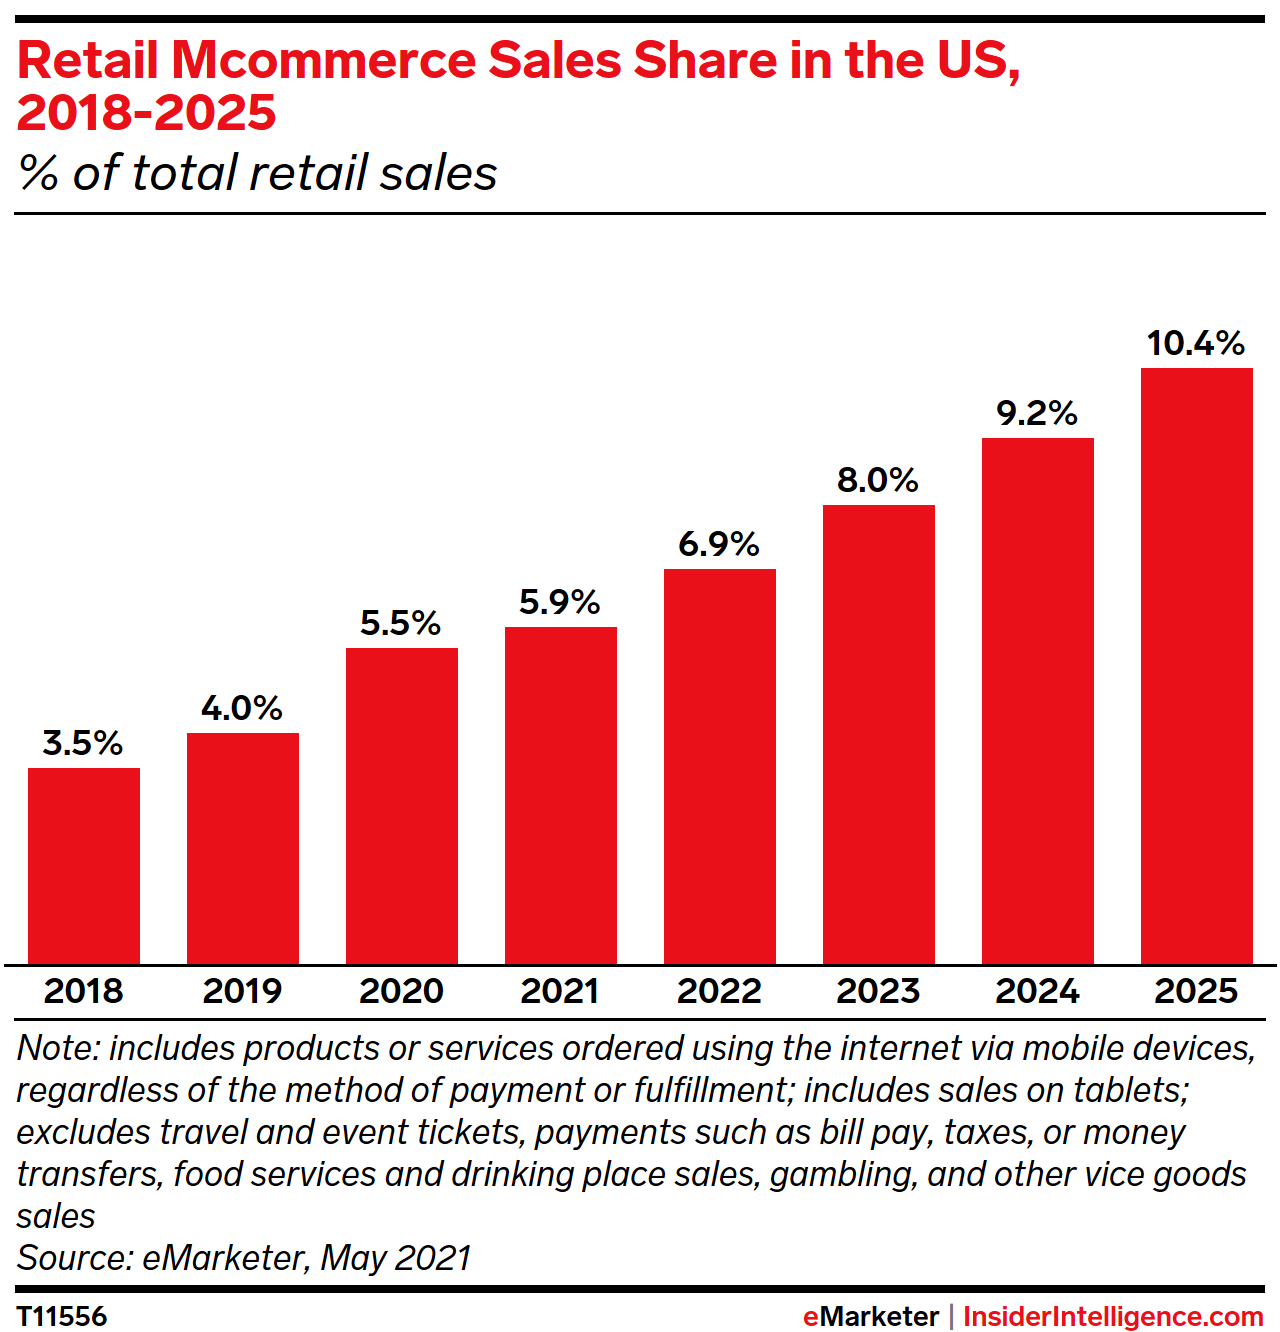 Retail M-Commerce Sales Shares in the US